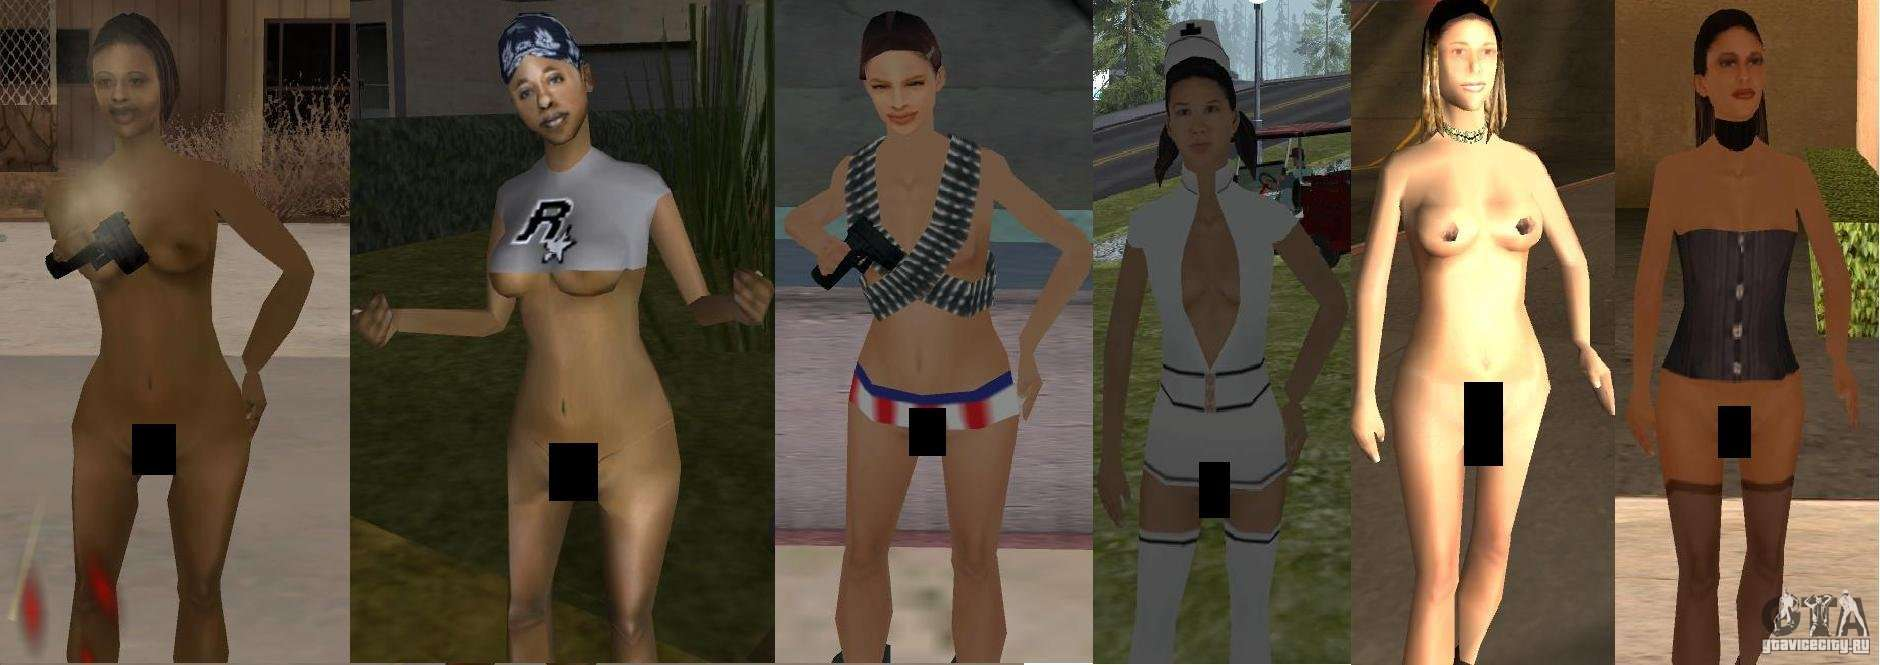 Gta san andreas girls nude